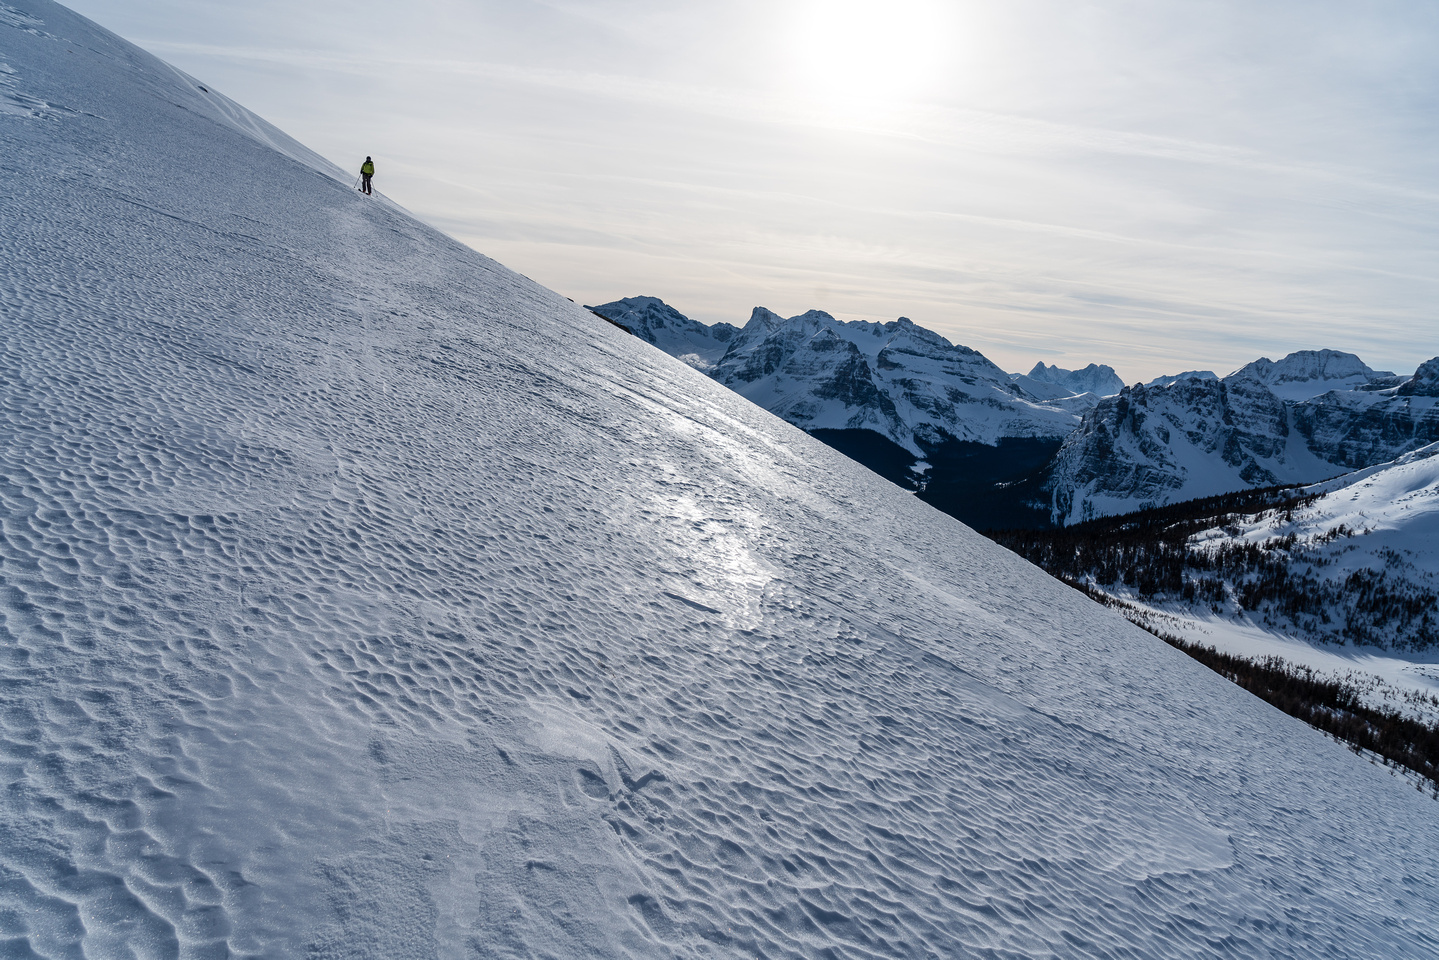 Descending the icy summit slopes.